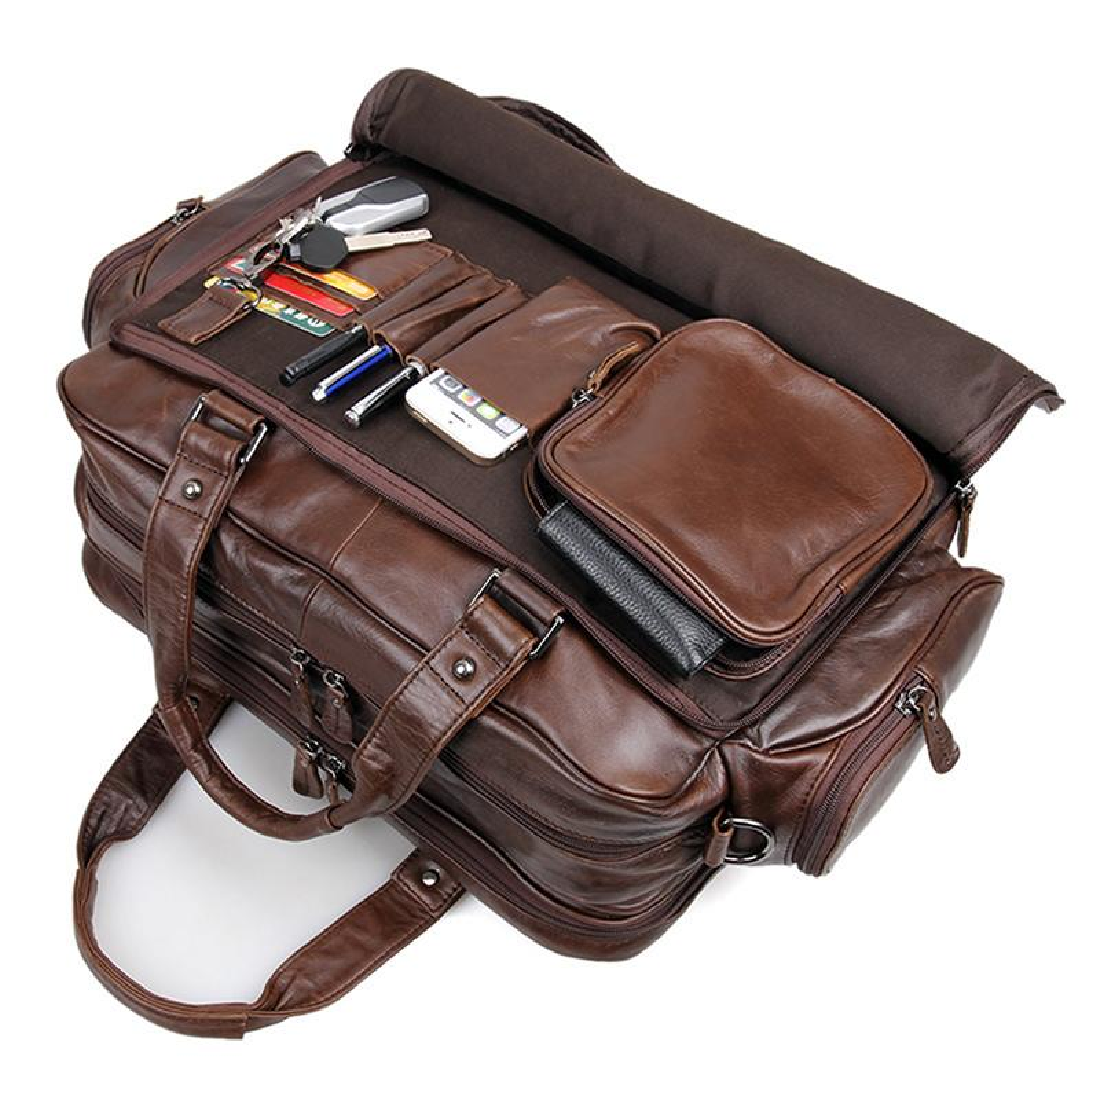 fec2f5b7b9c37 Bag Leather Real Briefcase Messenger Laptop Vintage Satchel 16 Men Shoulder  S Brown New Business Handmade